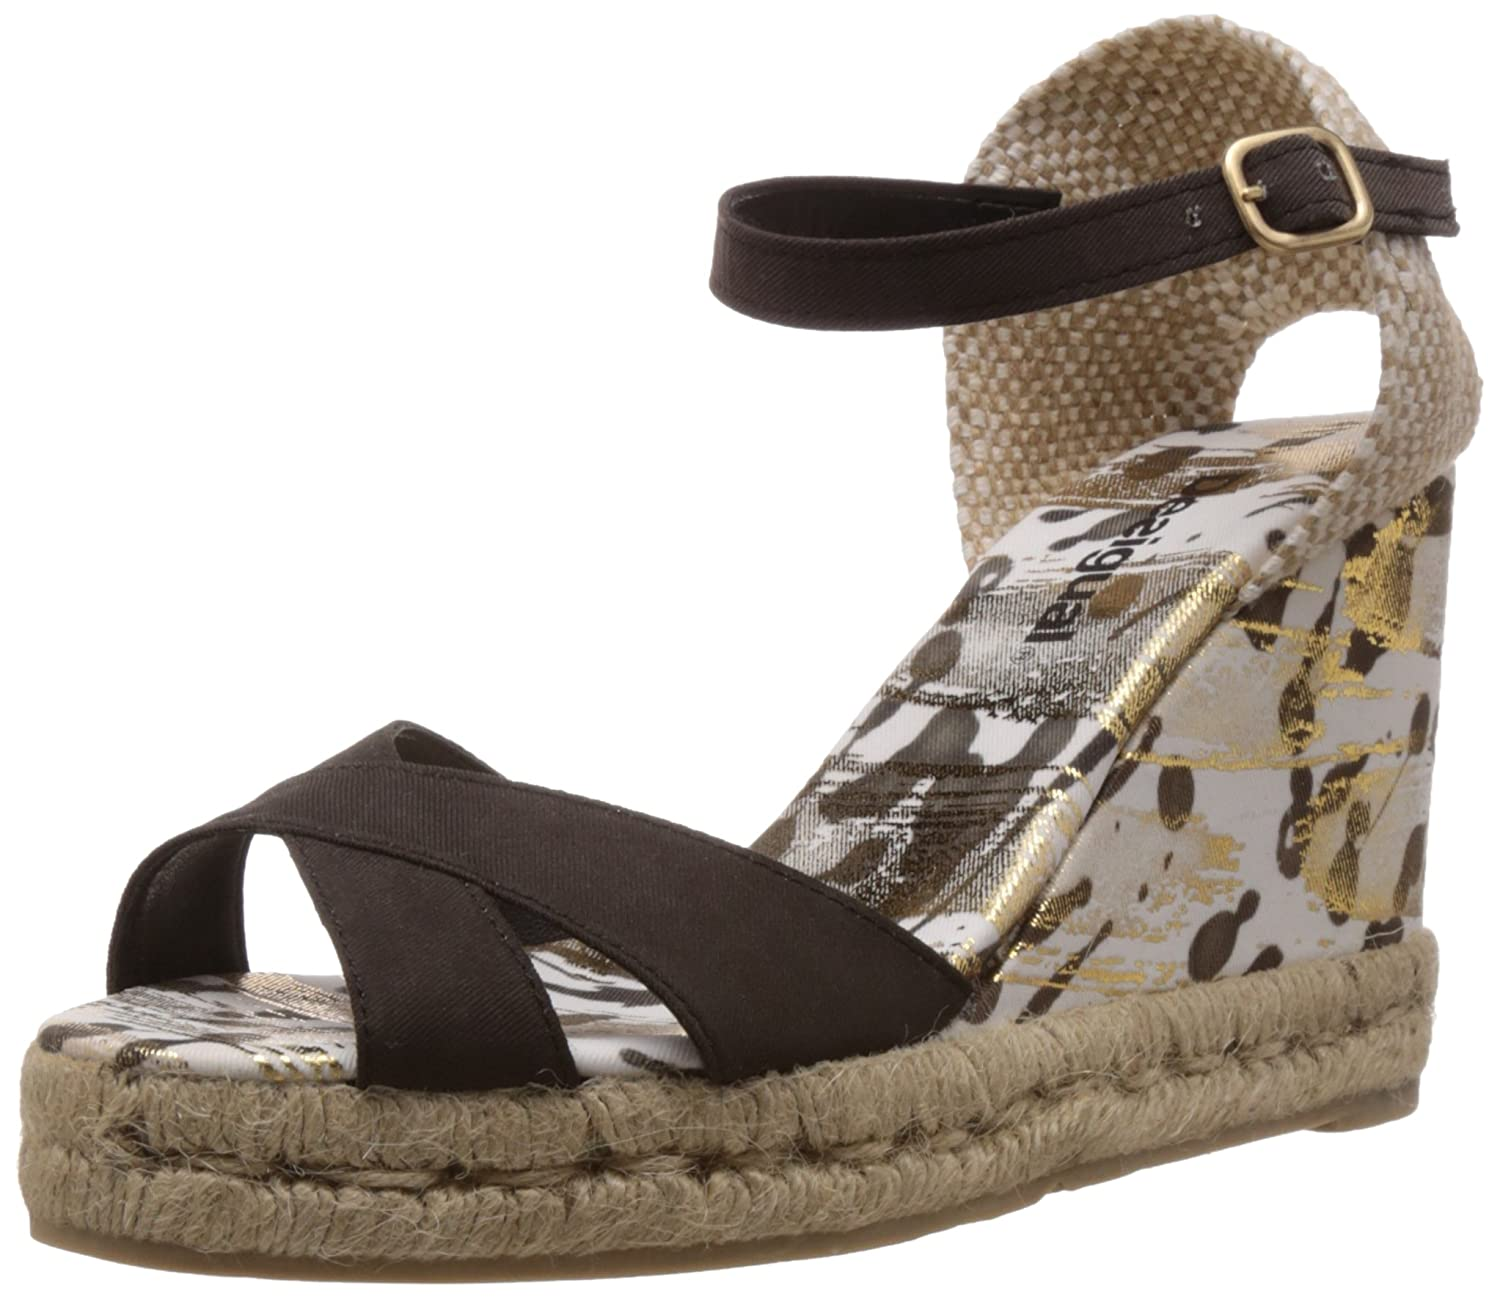 hot sale 2017 Desigual Shoes_gold, 8010 Dorado, 36, Sandales femme